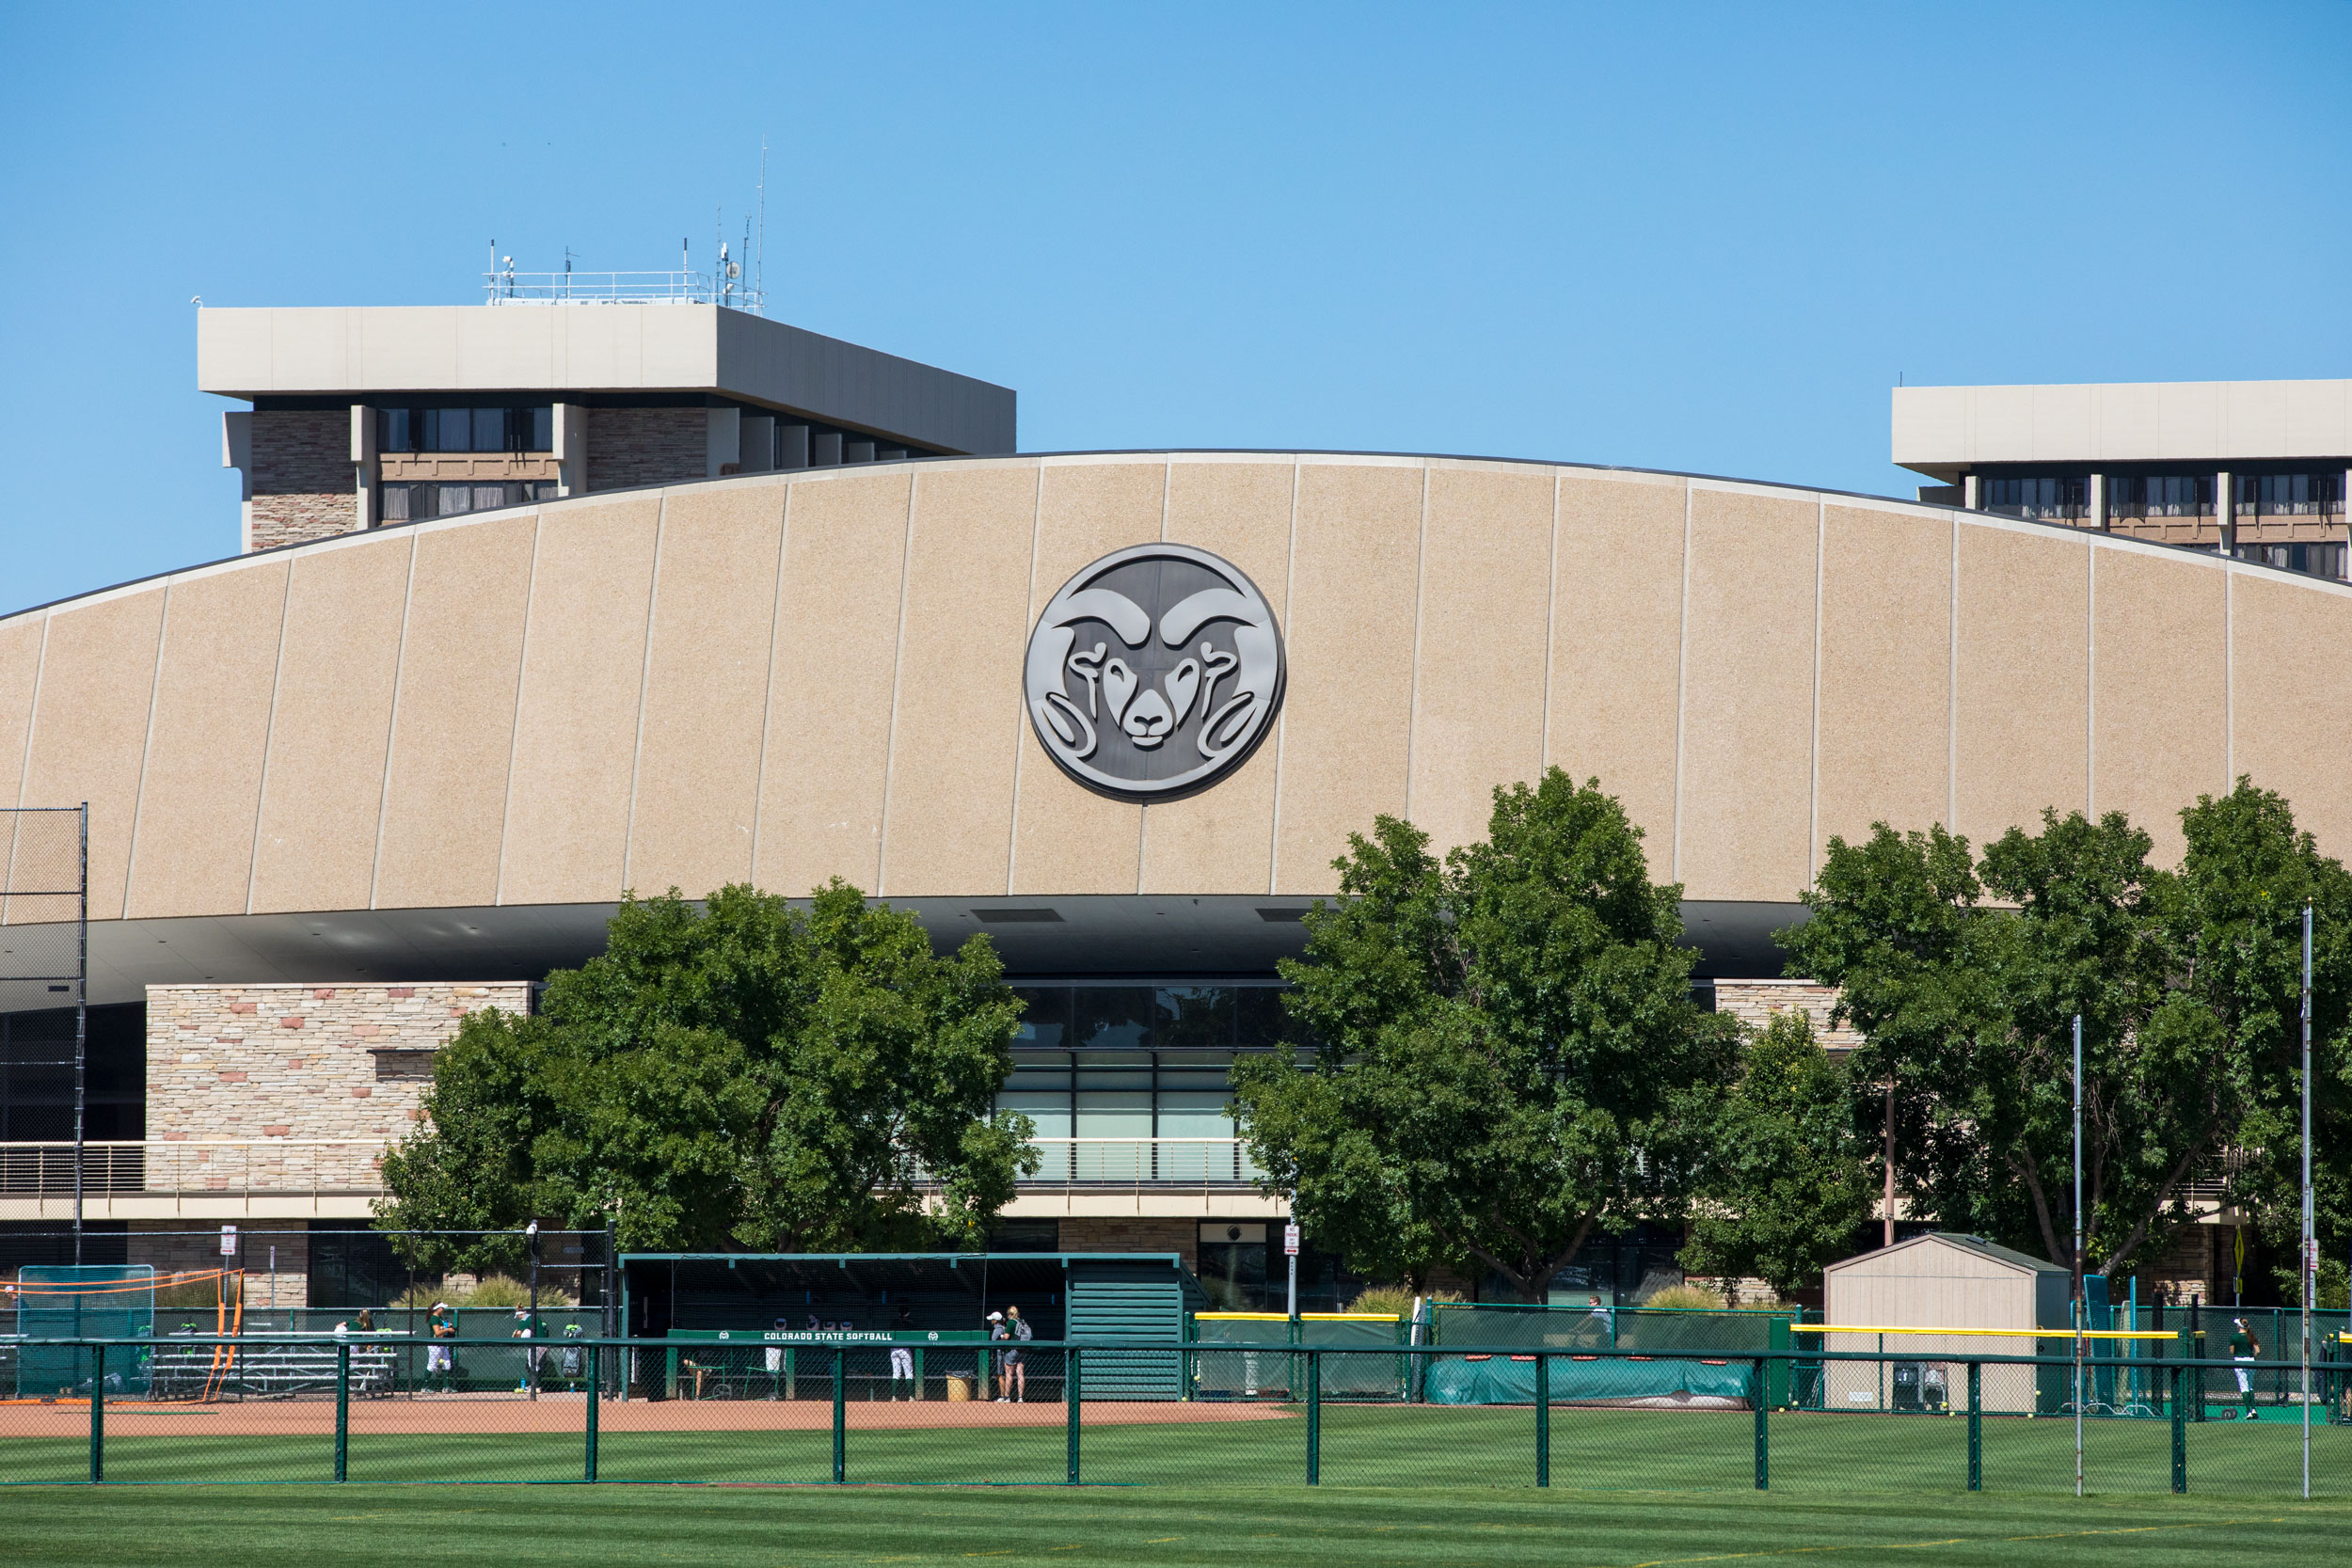 COLORADO STATE UNIVERSITY MOBY ARENA